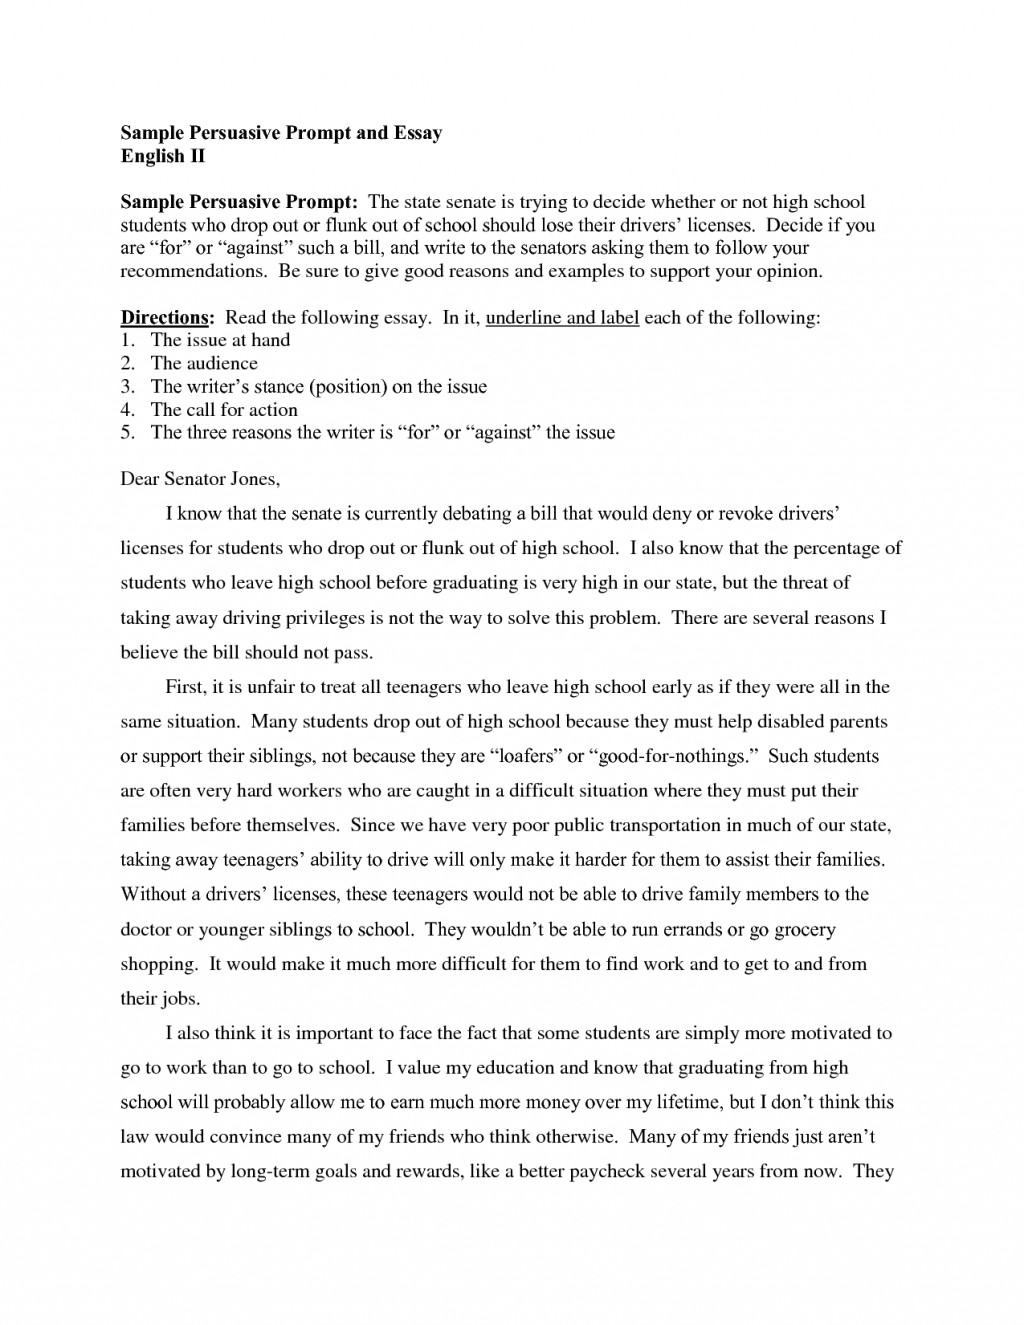 021 Research Paper Examples Of Argumentative Topics Persuasive Essay For High School Sample Ideas Highschool Students Good Prompt Funny Easy Fun List Seniors Writing English Marvelous Large